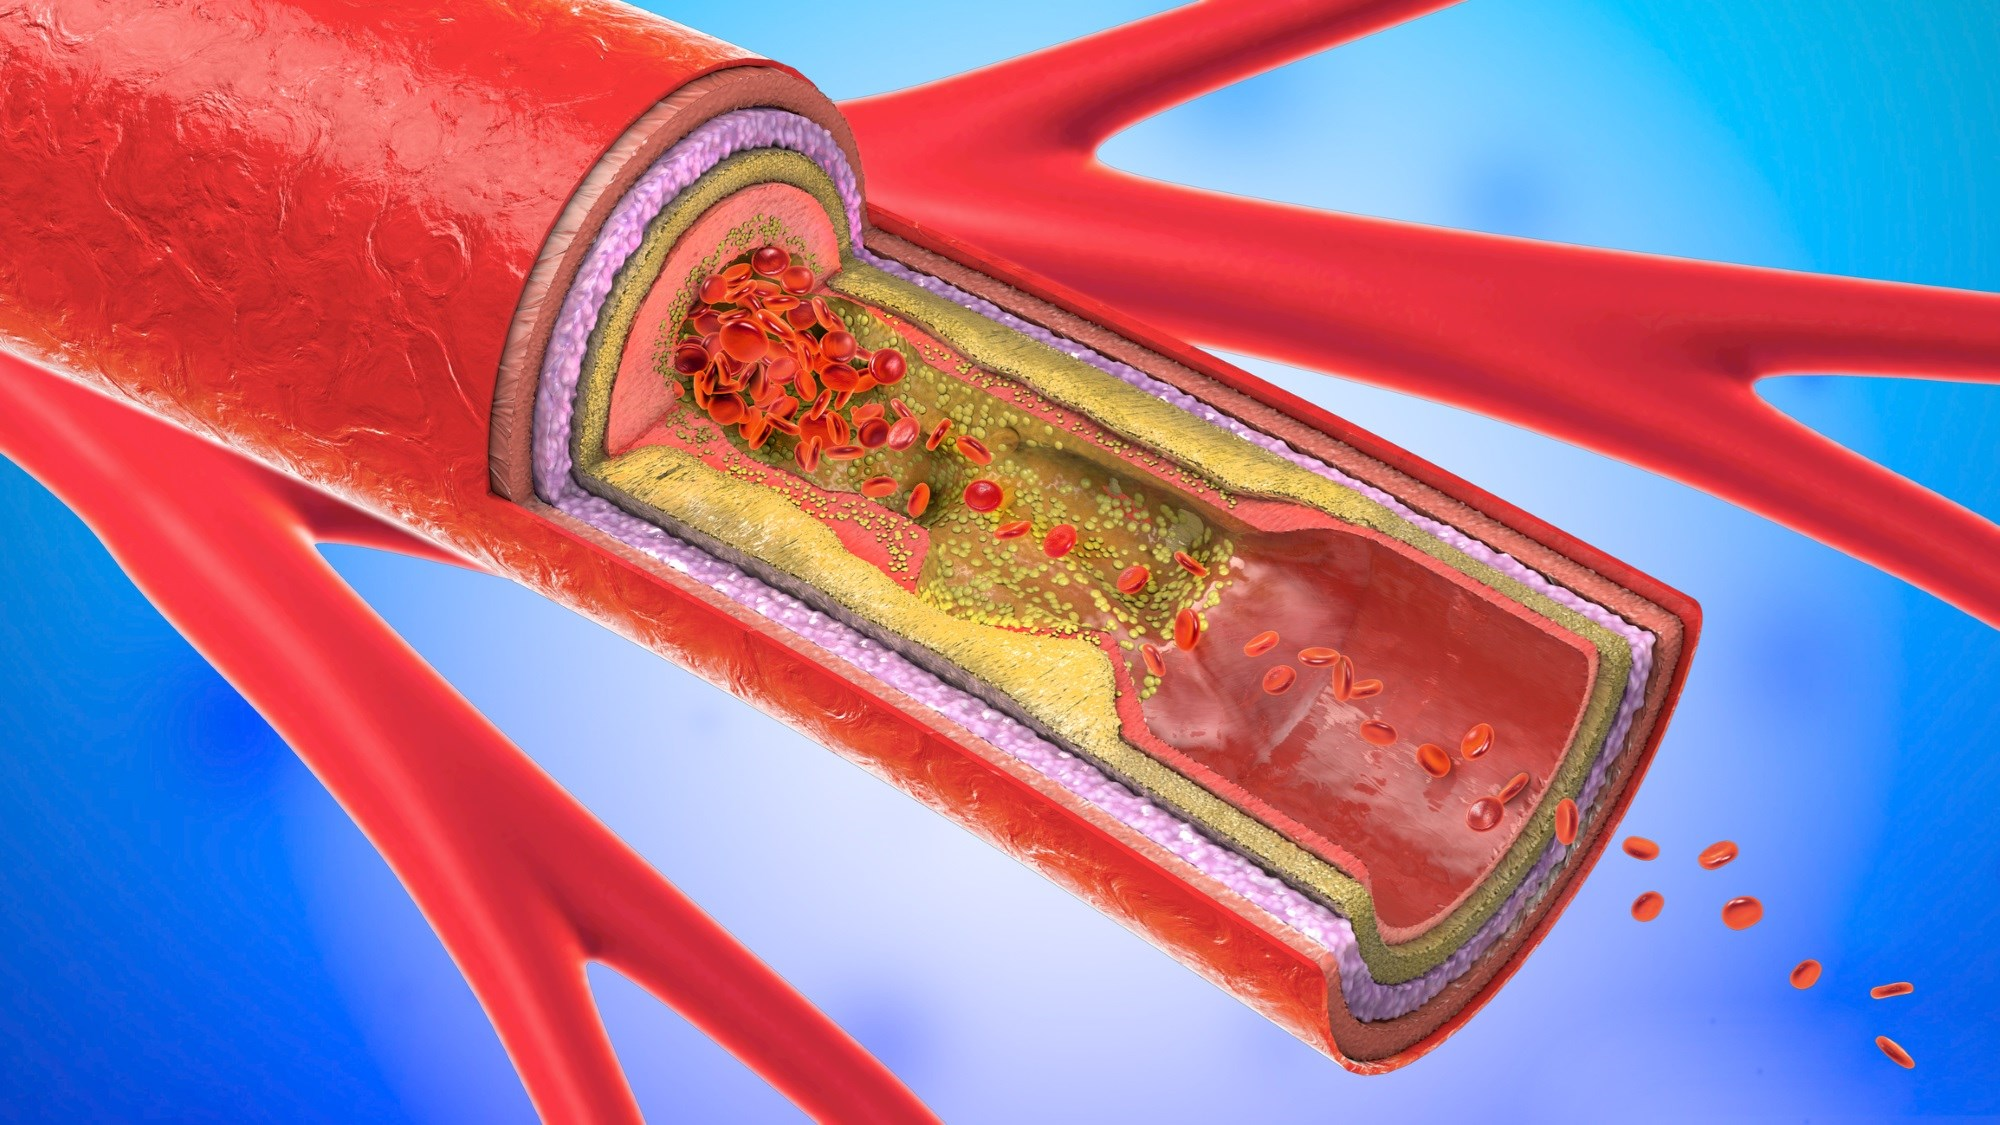 Obesity was associated with an increased carotid necrotic core volume and calcification in patients with and without type 2 diabetes.